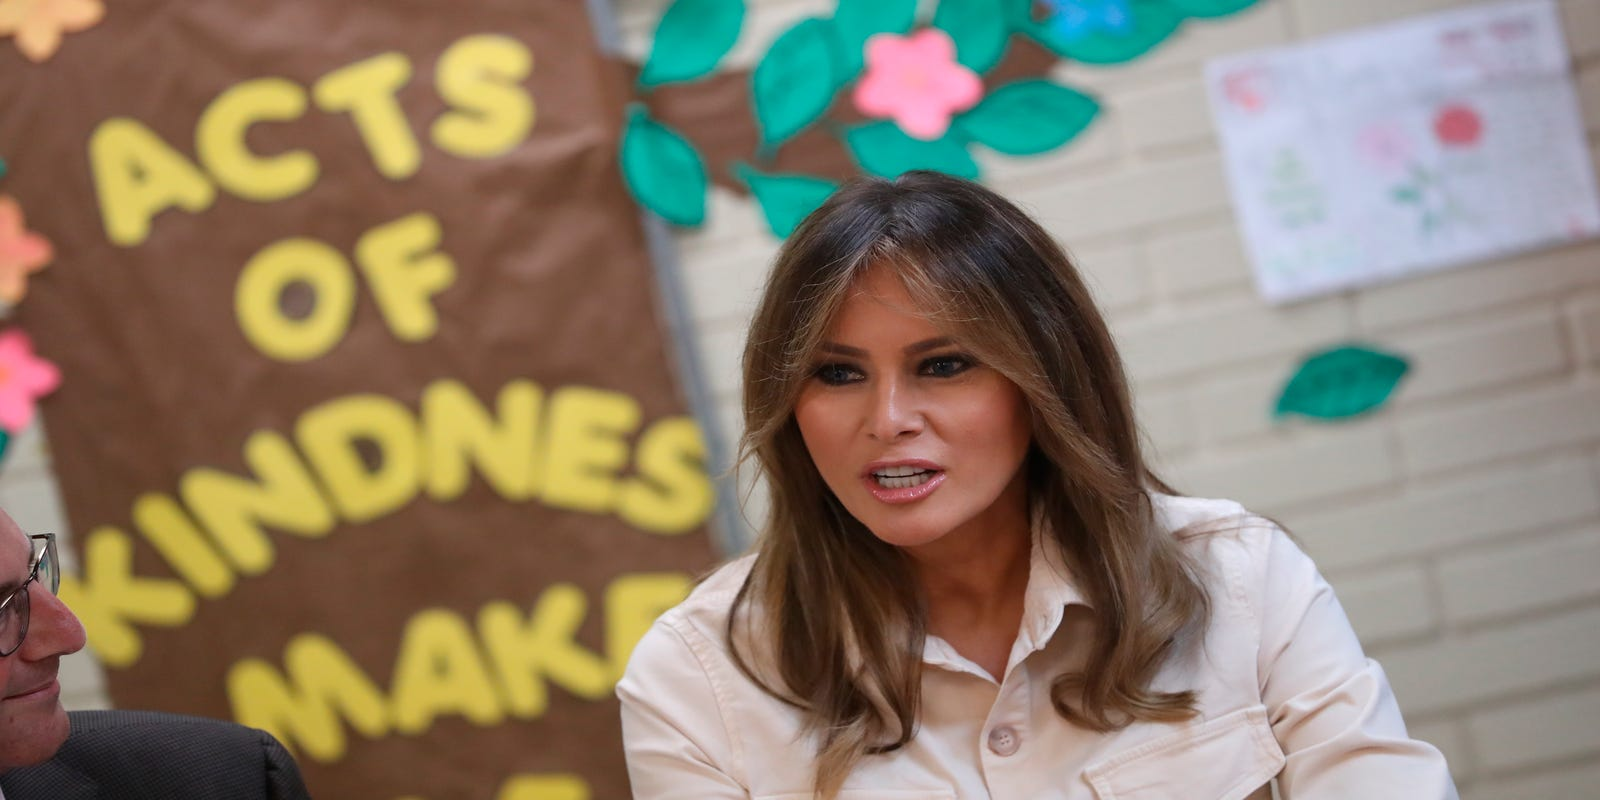 791a95c56b9c Melania Trump steps in again on migrant kids crisis in surprise trip to  Texas